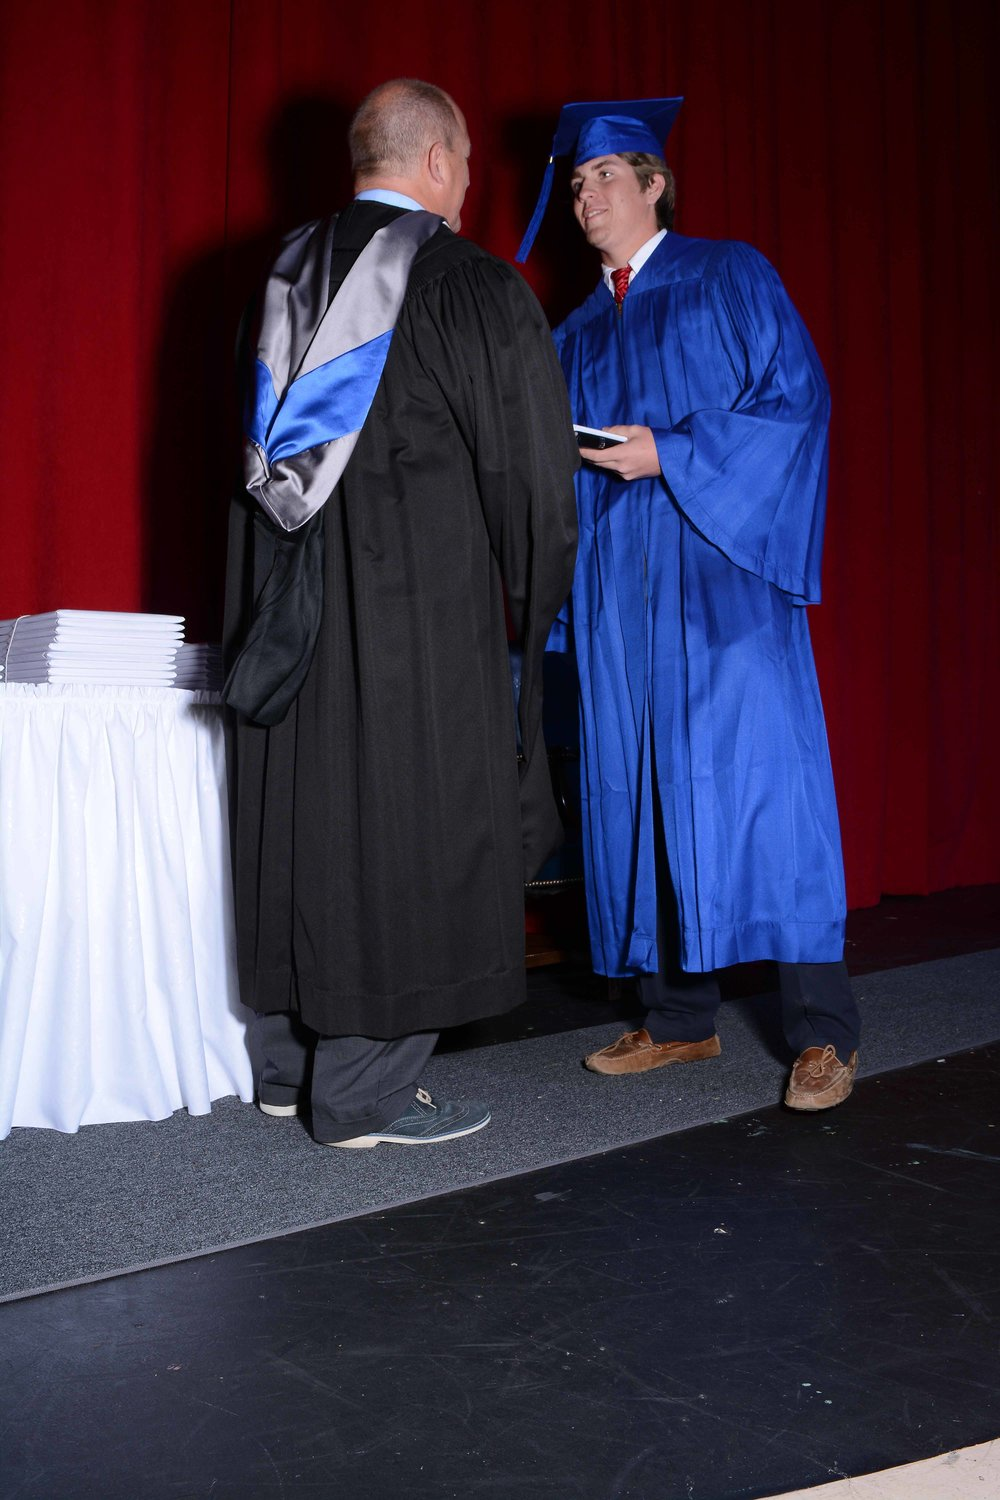 May14 Commencement117.jpg